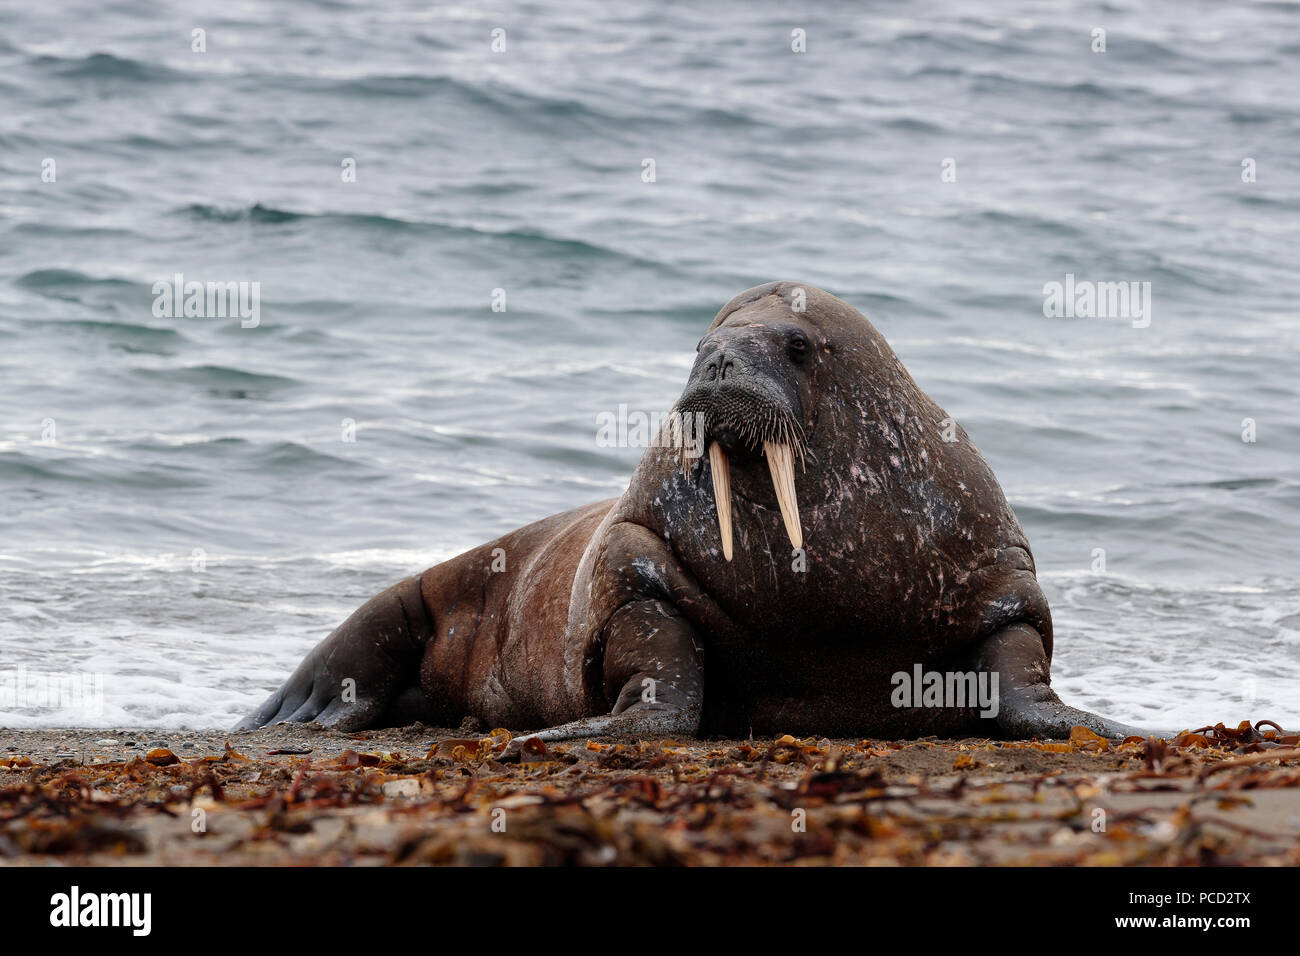 Walrus in Svalbard - Stock Image